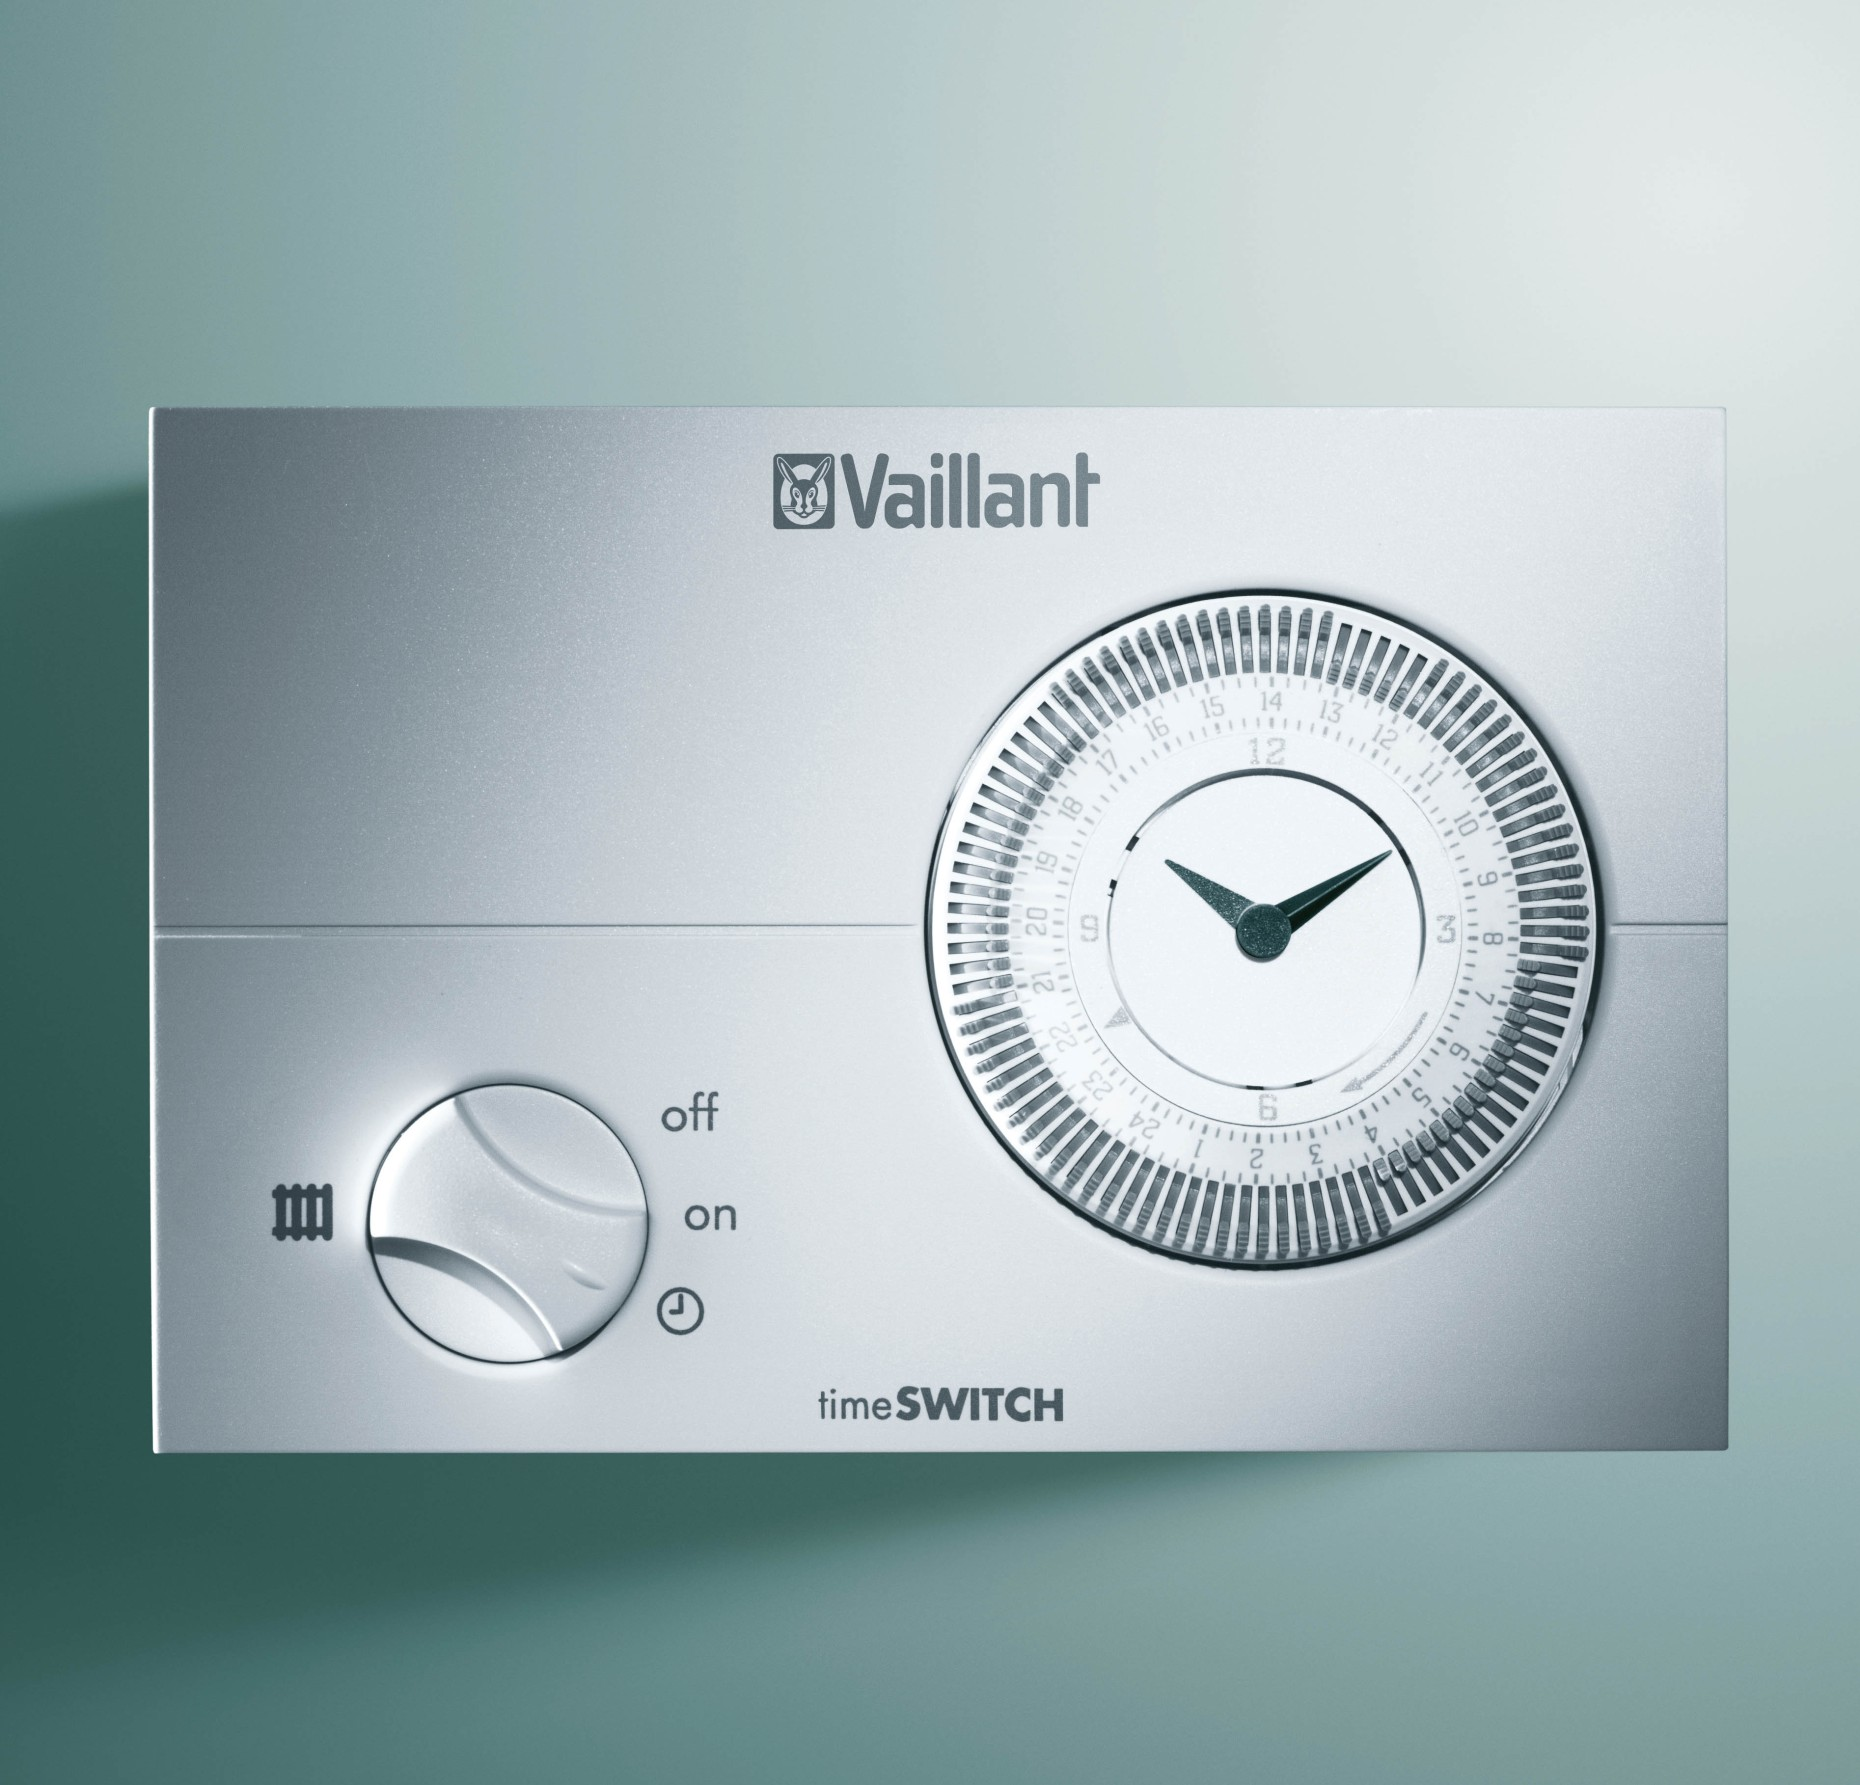 timeswitch 150 boiler controls rh vaillant co uk Cutler Hammer Manual Transfer Switch Ethernet Switch Manual